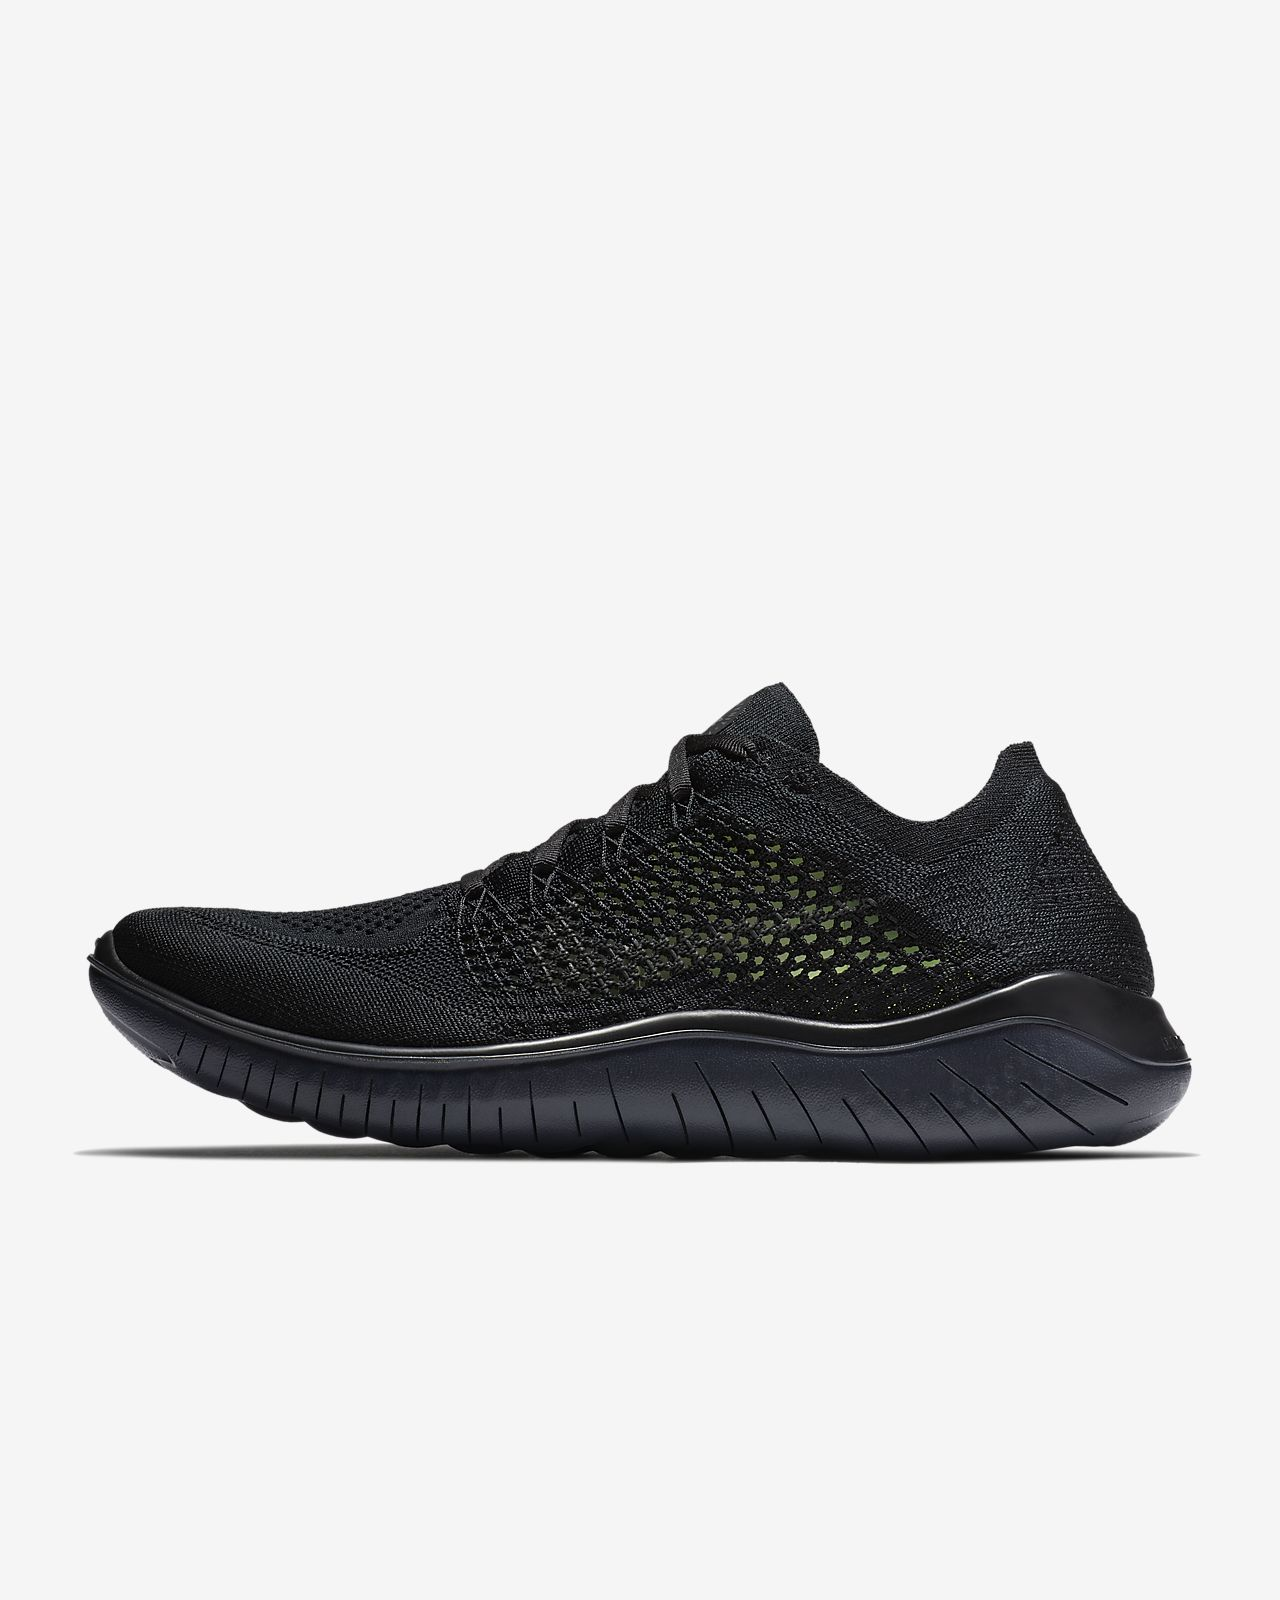 5428553552c clearance nike free flyknit 3.0 mens black not working 31819 76d8a